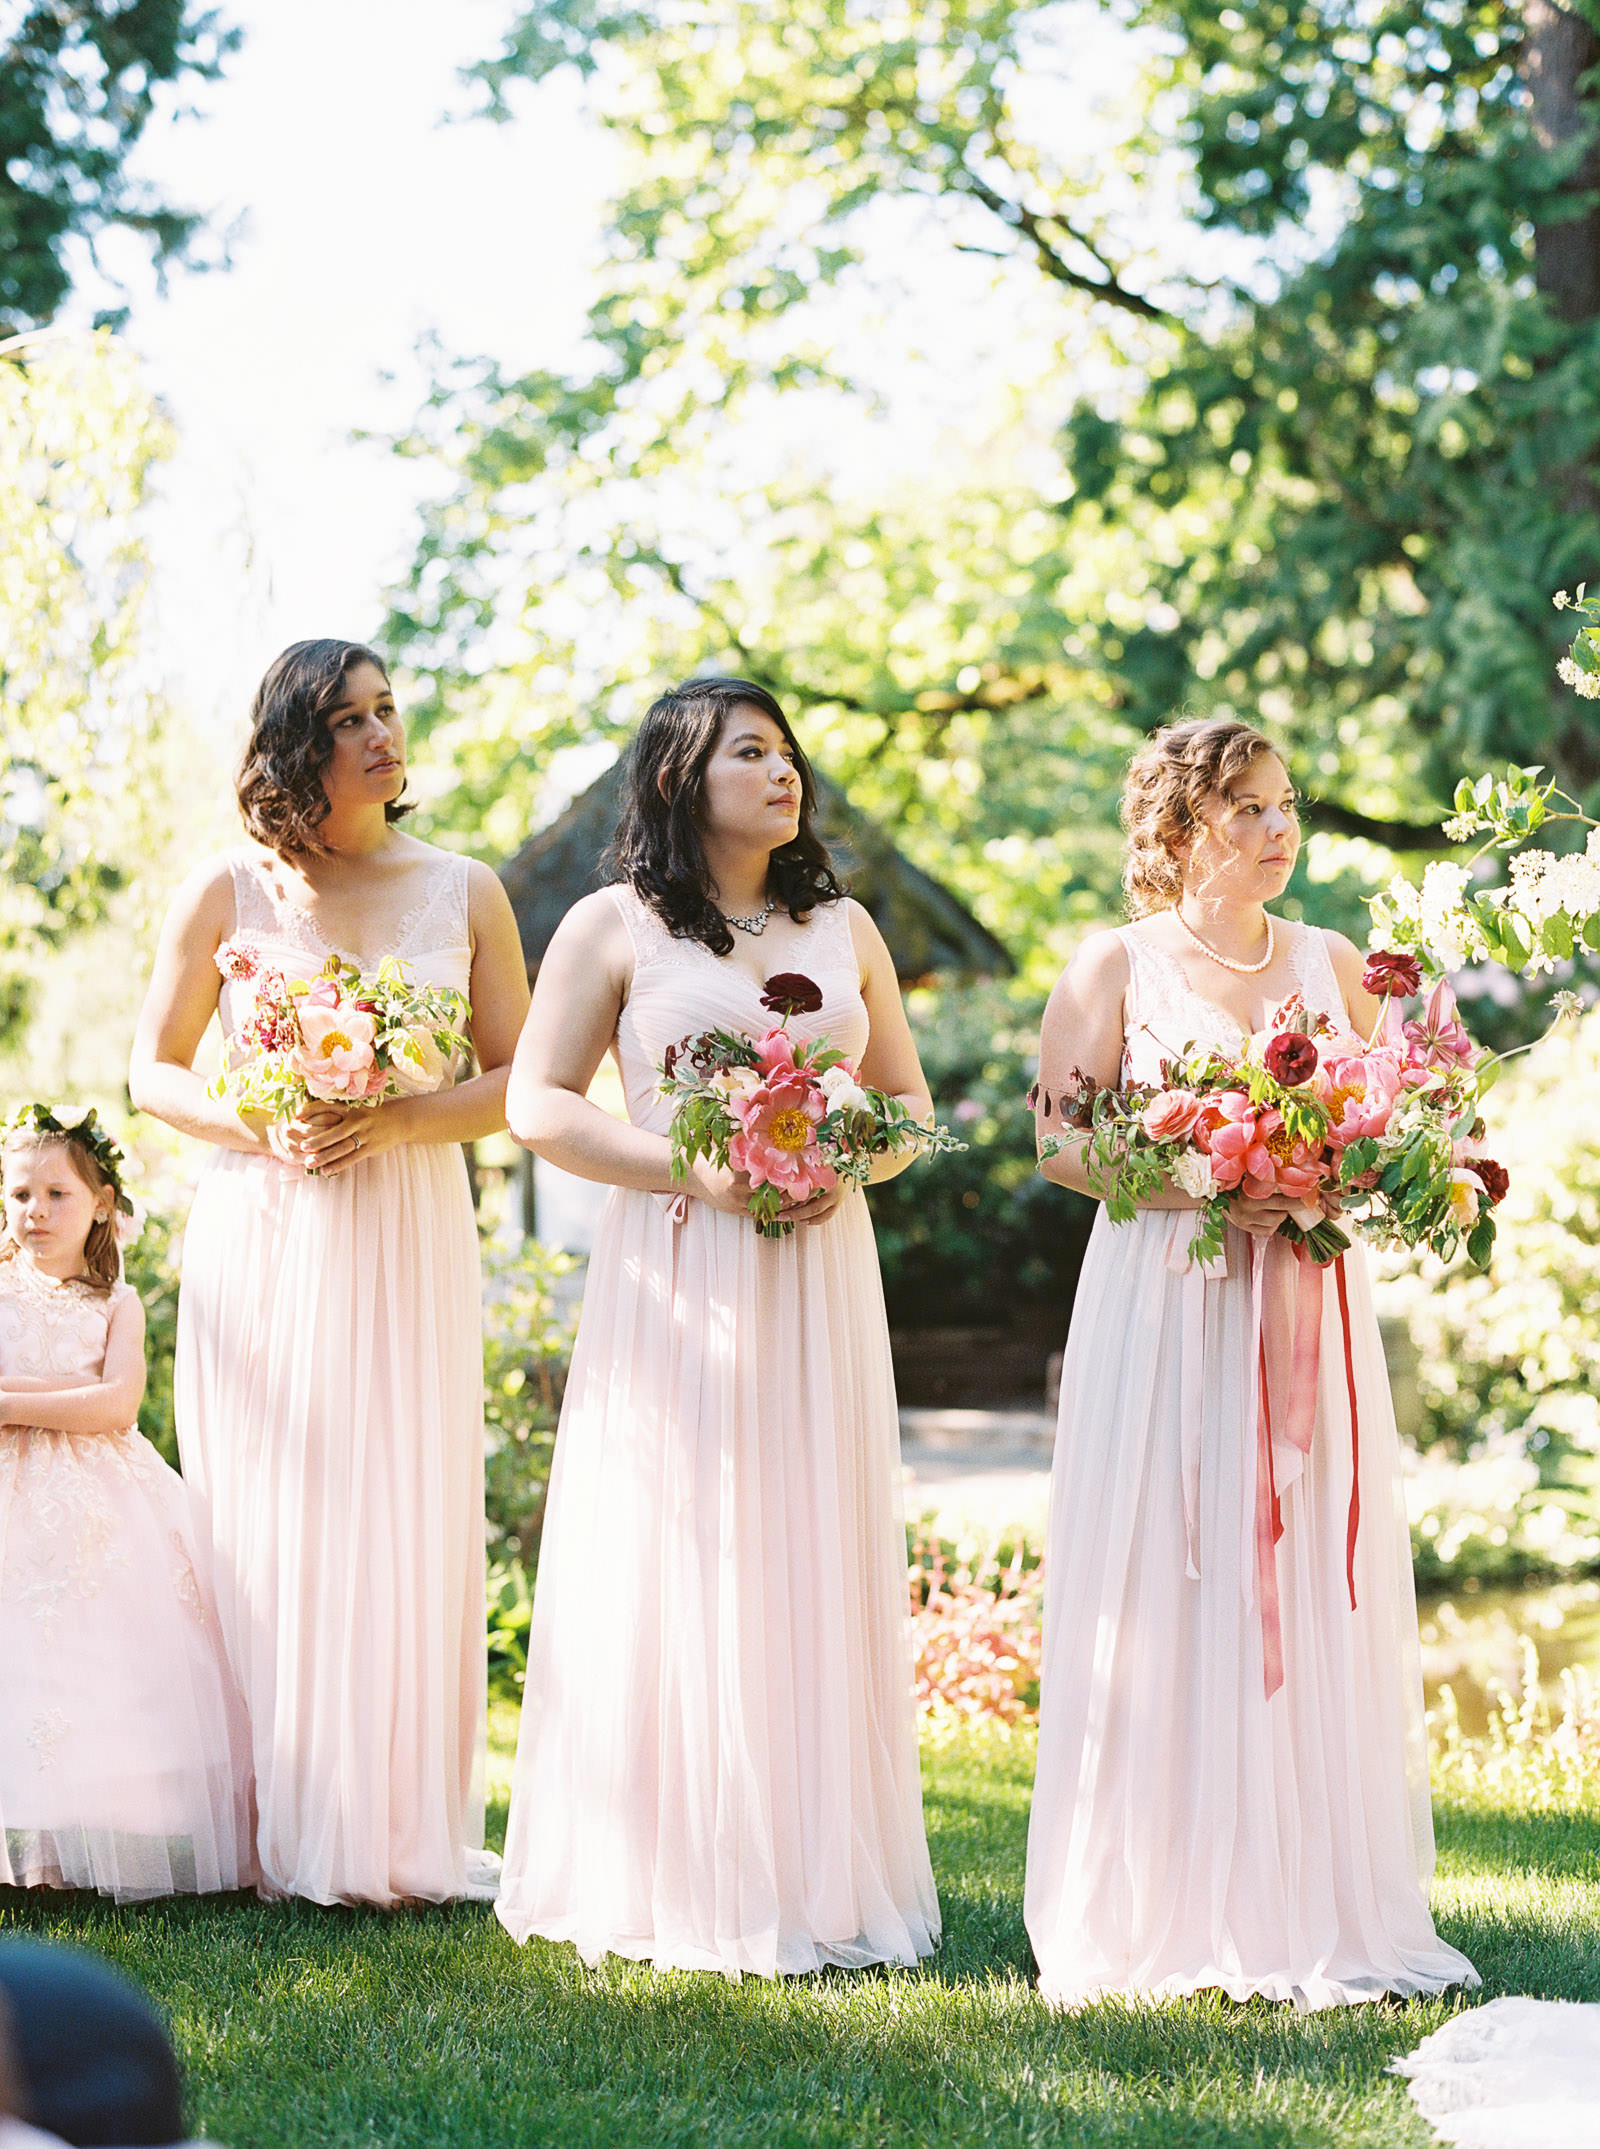 An Elegant Spring DeLille Cellars Wedding with vibrant pops of Color | Seattle Wedding Photographer Anna Peters